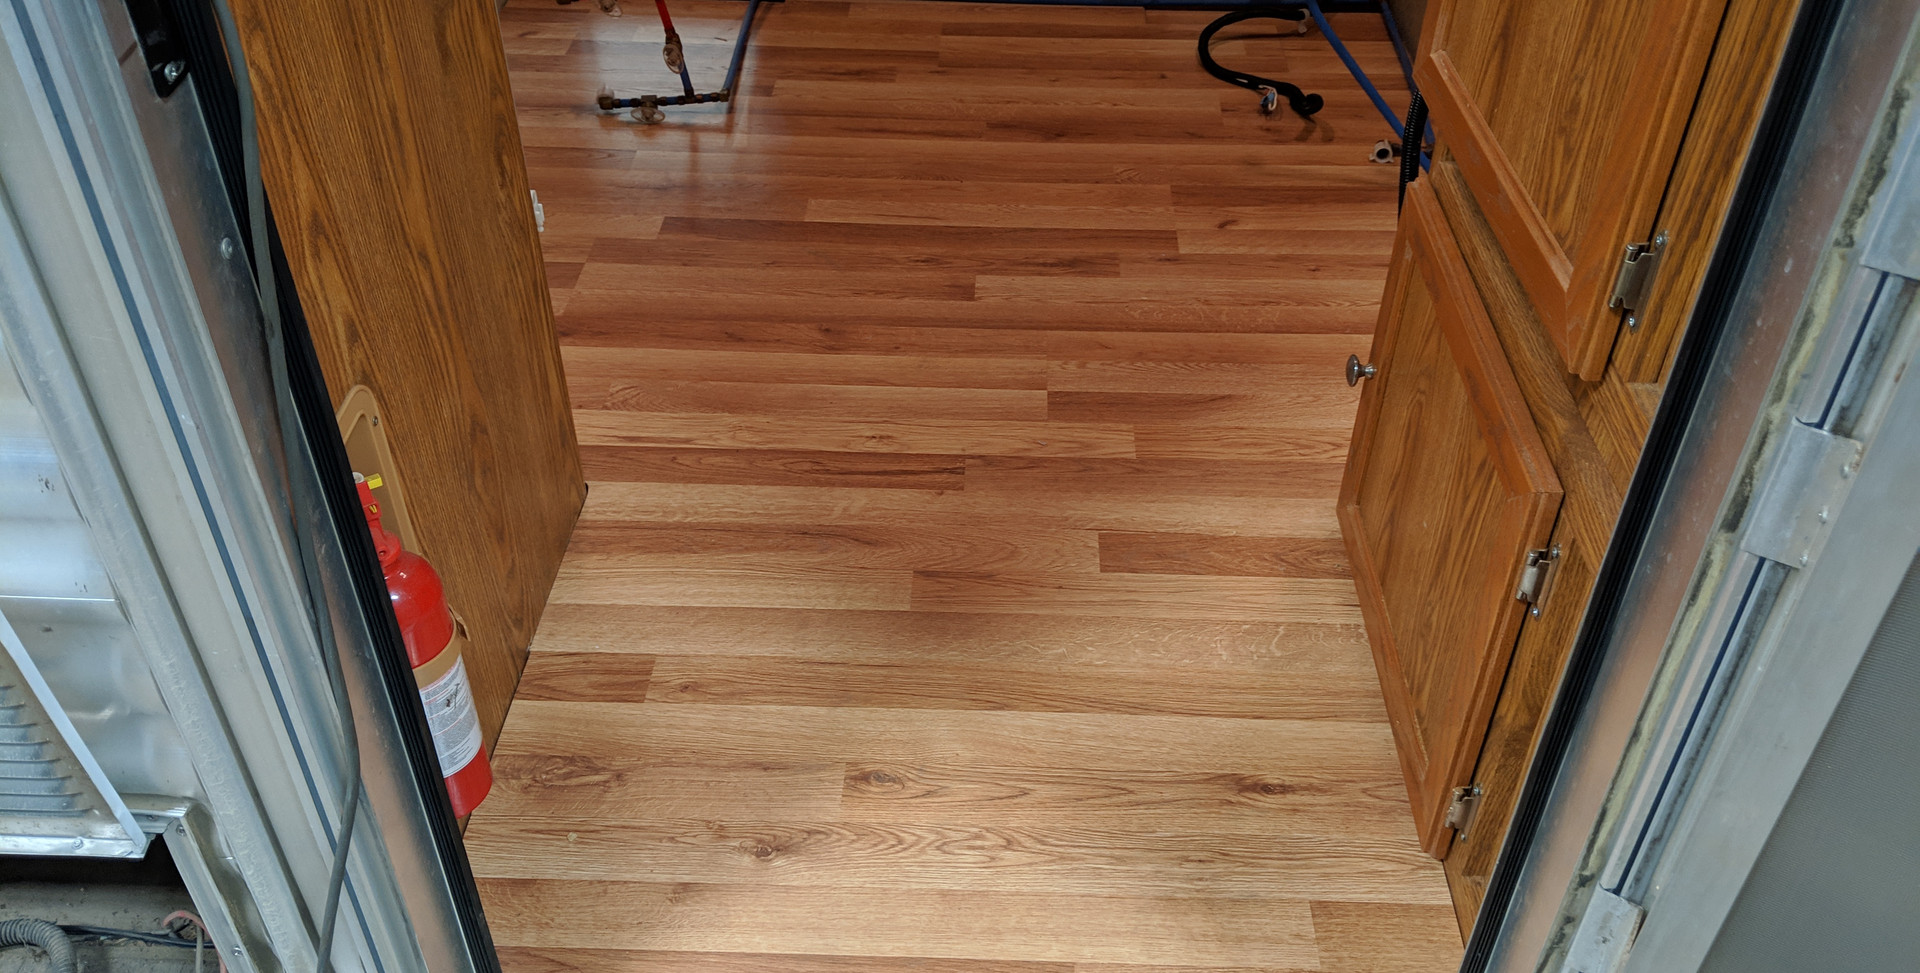 New raised flooring